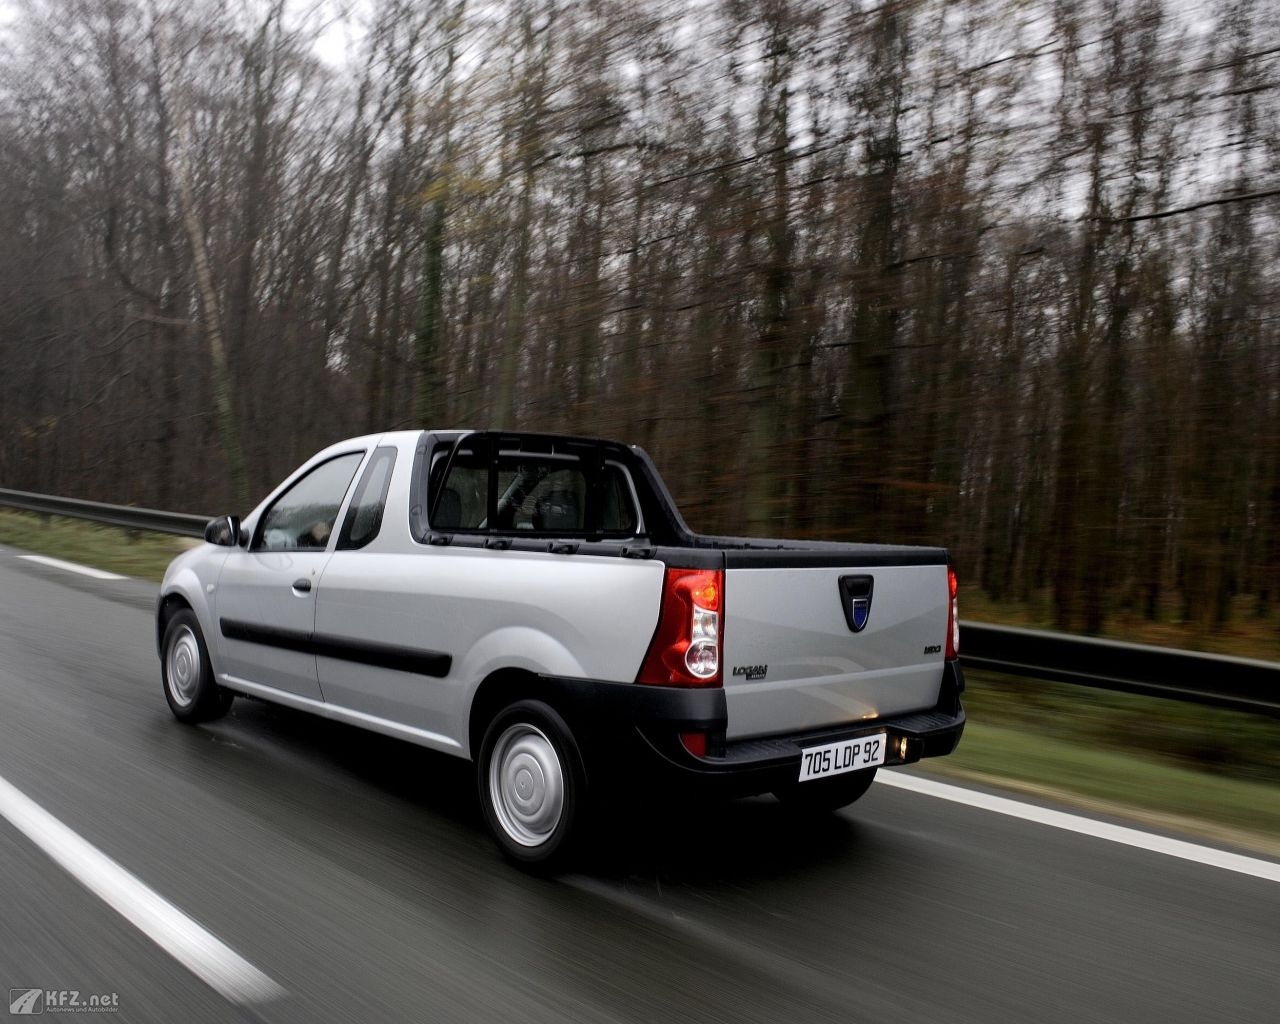 dacia-pick-up-1280x1024-41